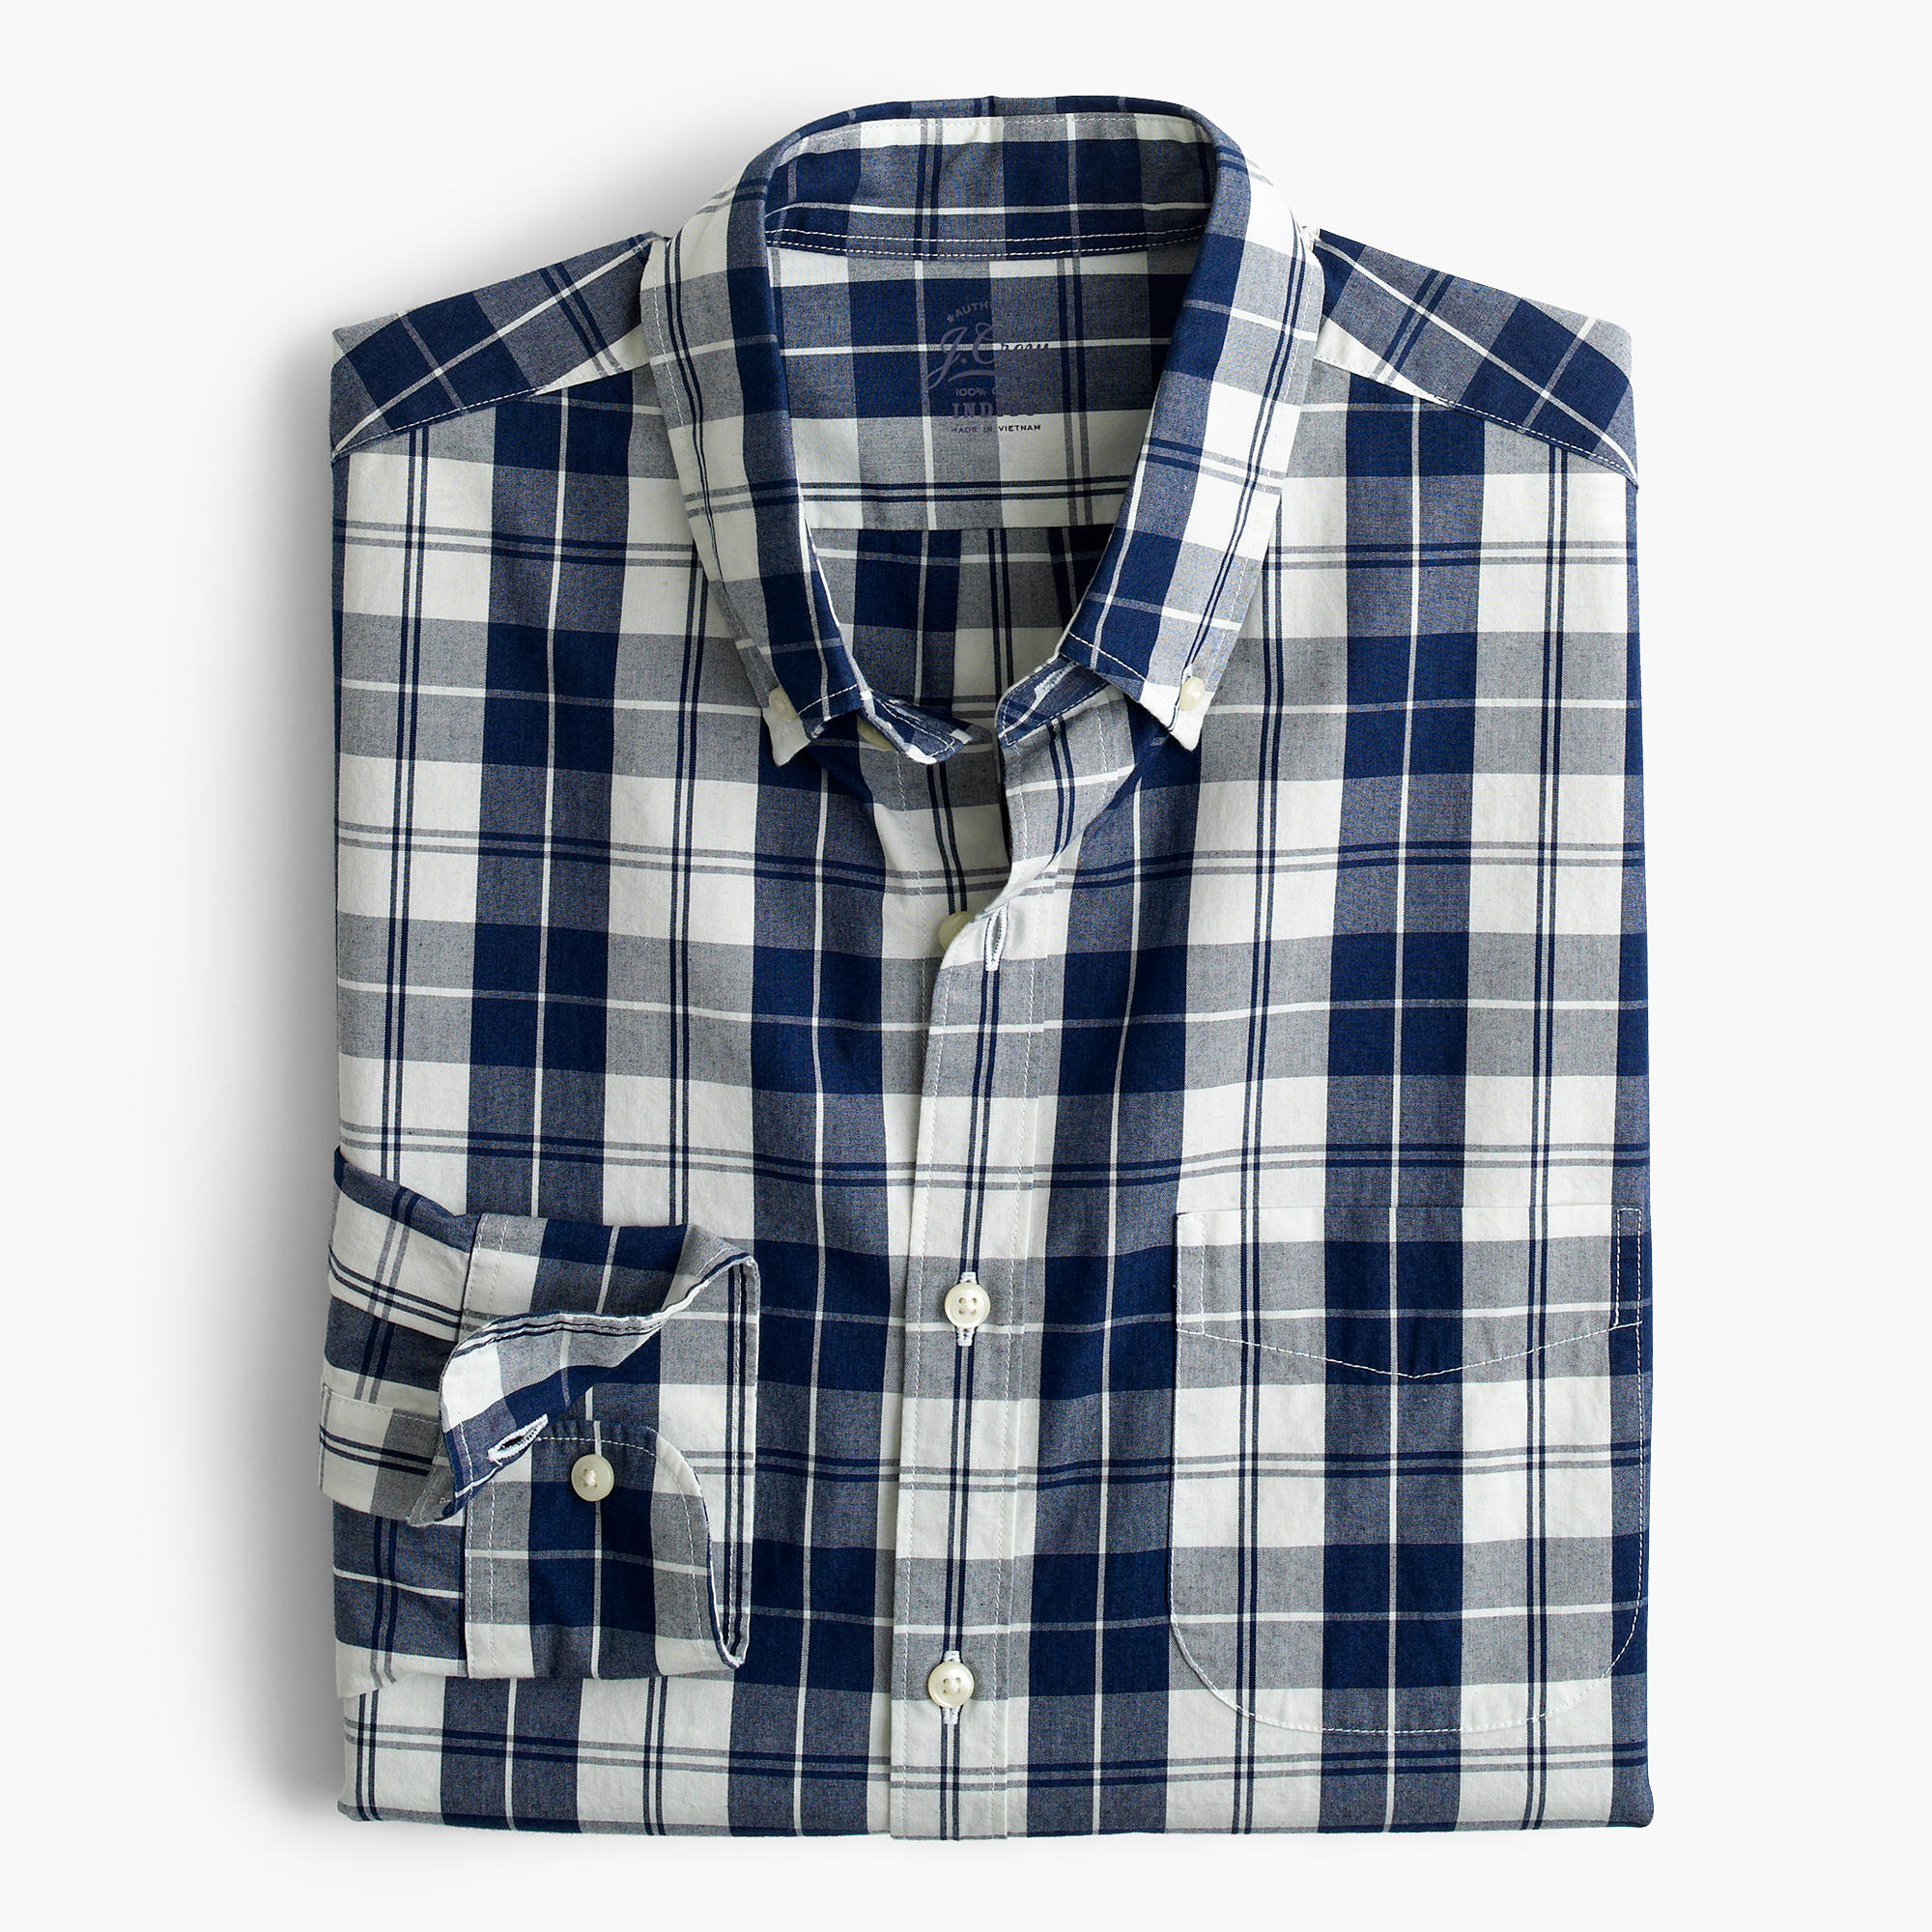 J.Crew Indigo Plaid